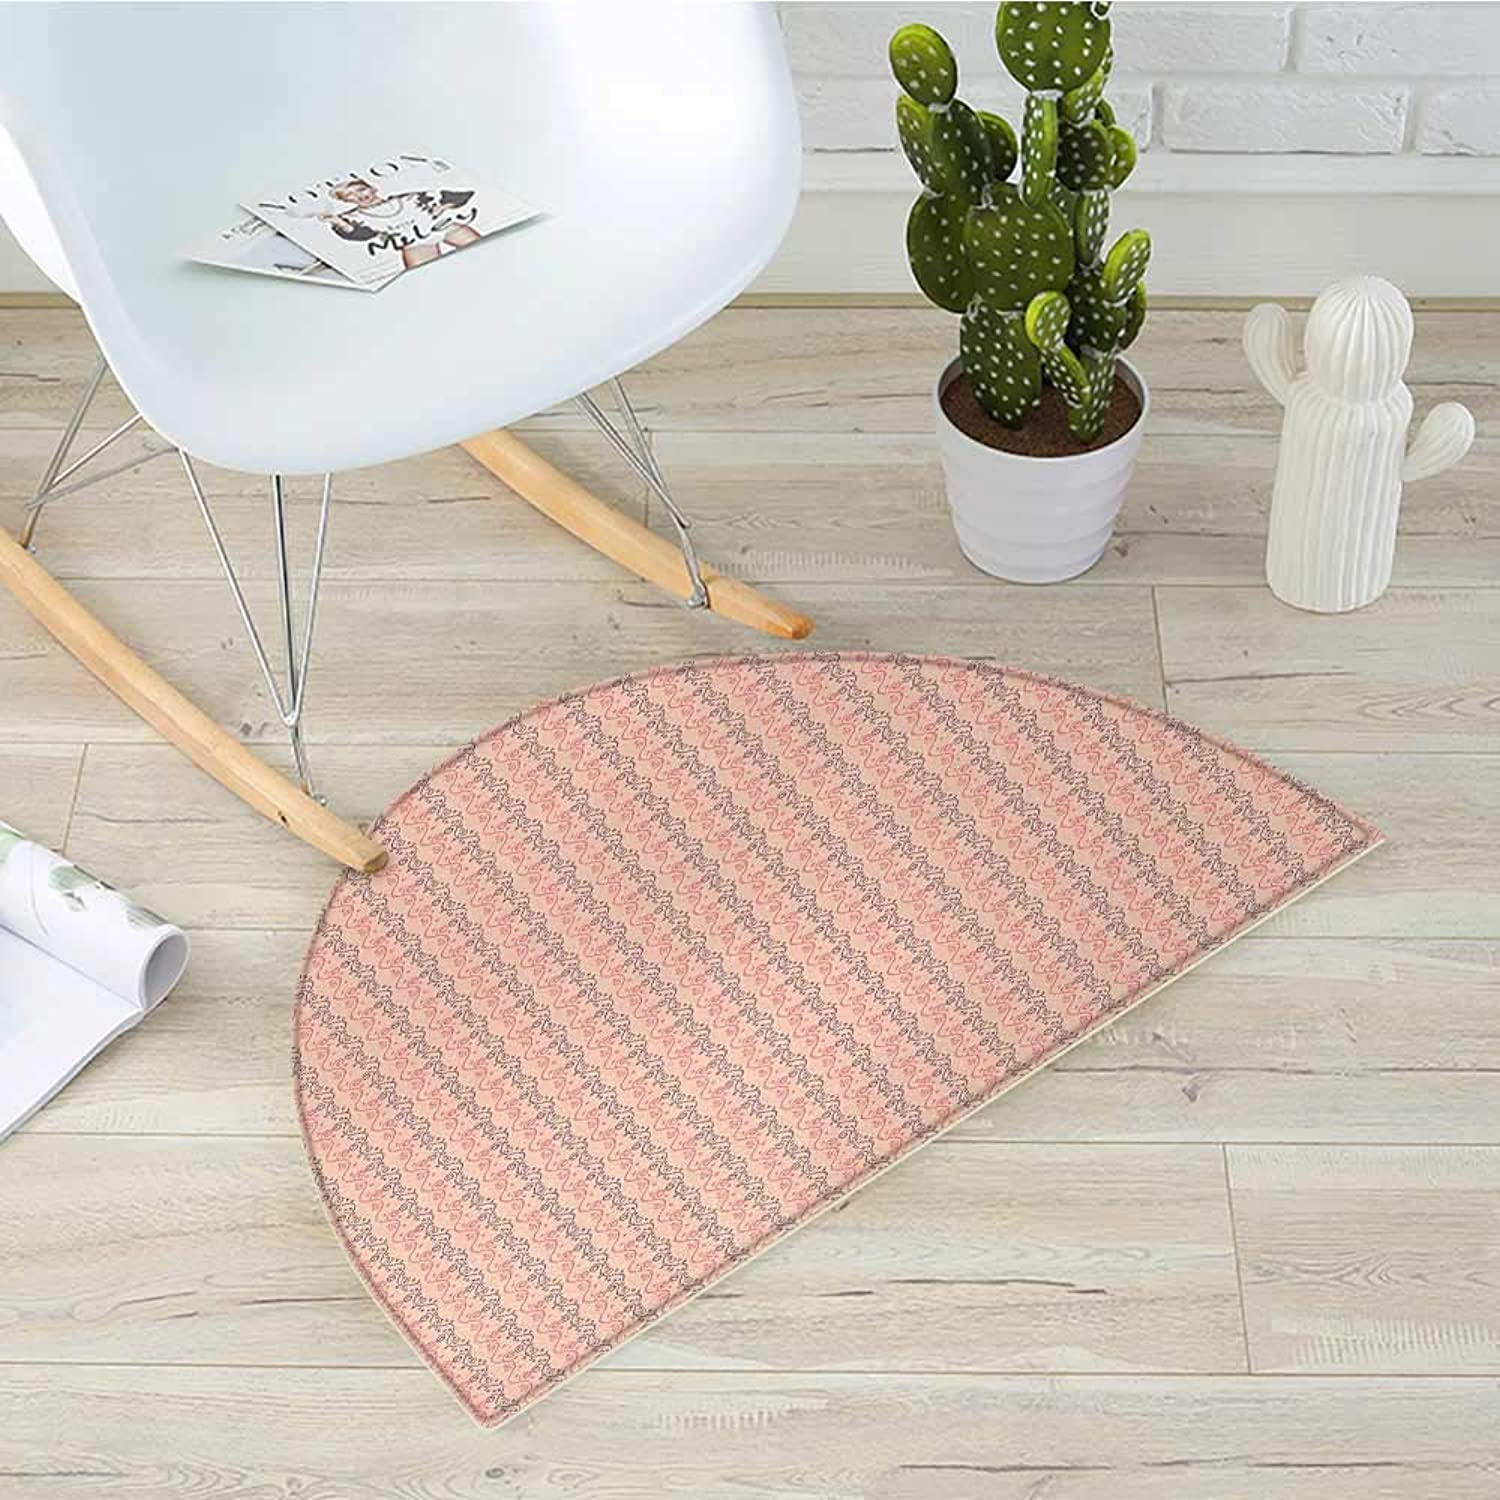 Floral Semicircular Cushiongreenical Abstract Flowers Design with Heart Shaped Leaves Romantic Print Entry Door Mat H 23.6  xD 35.4  Coral Soft Pink Purple